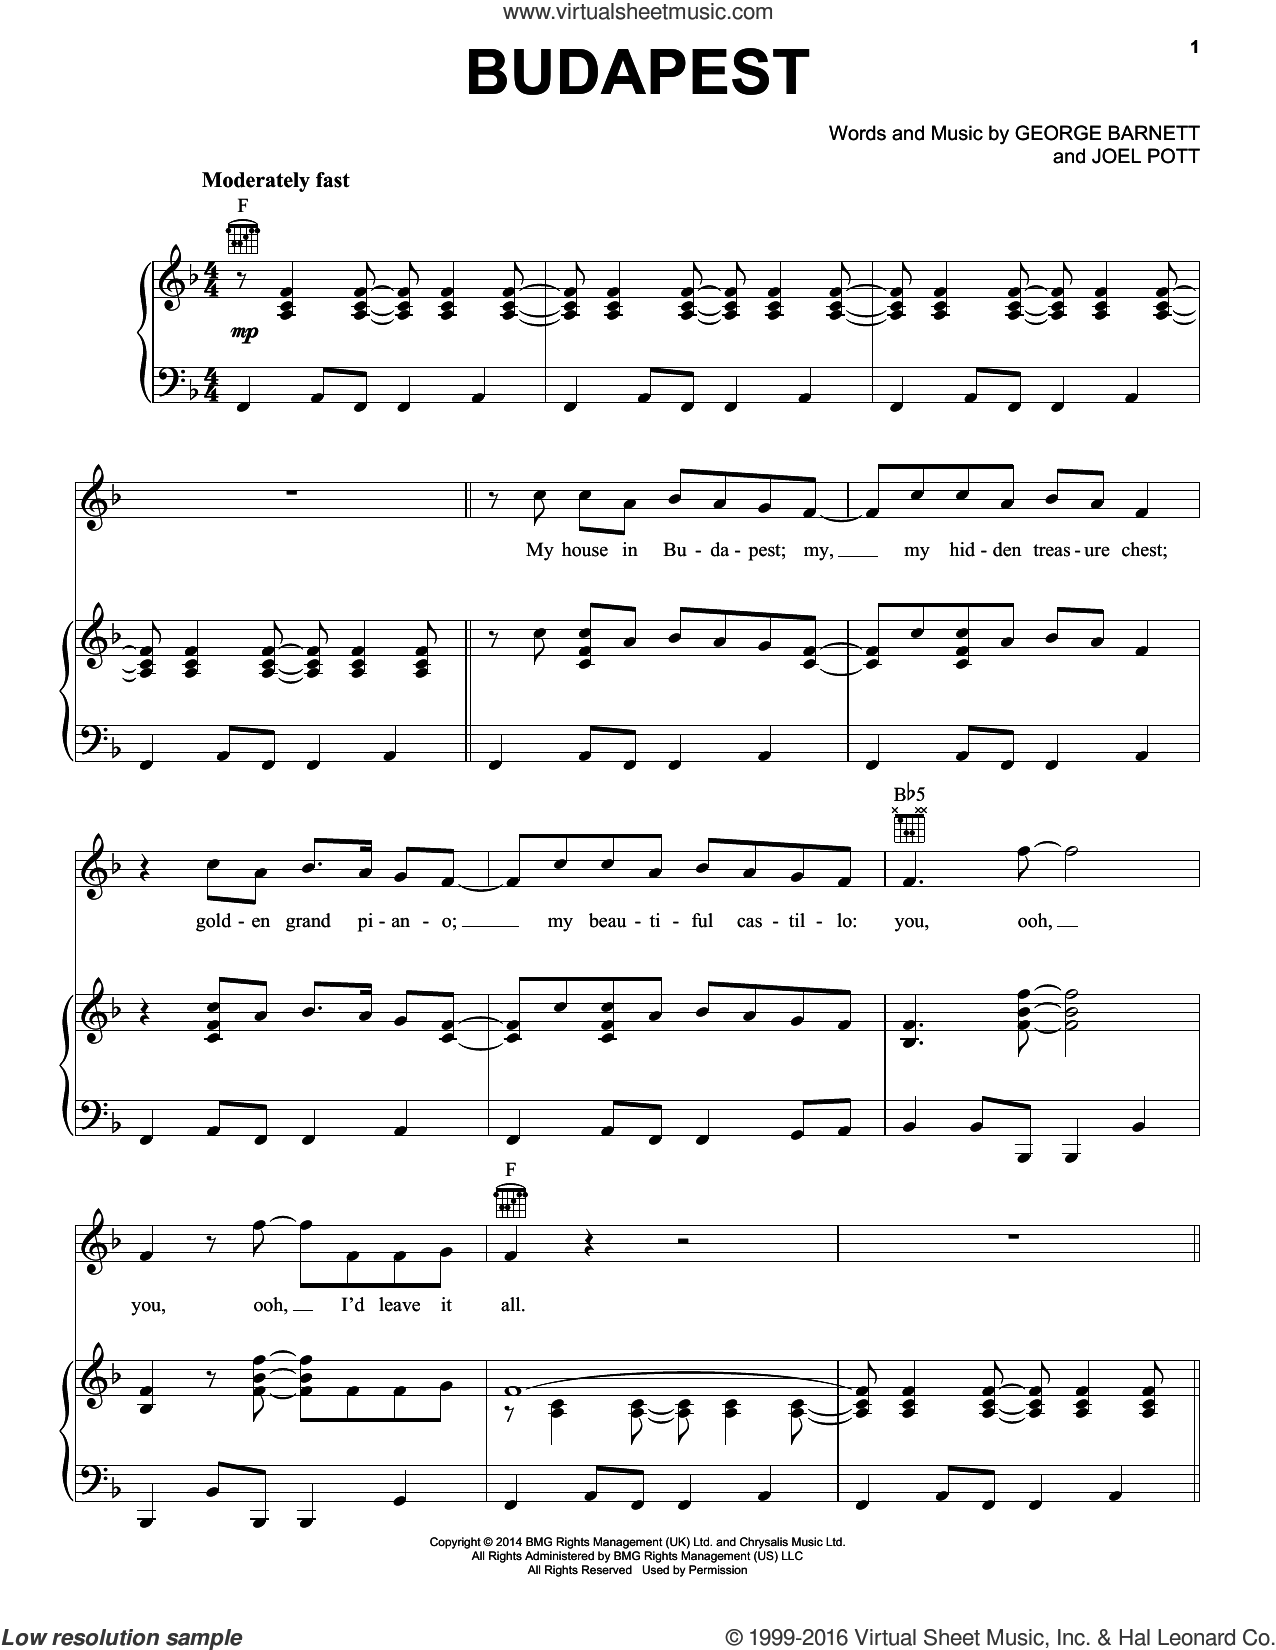 Budapest sheet music for voice, piano or guitar plus backing track by Joel Pott. Score Image Preview.